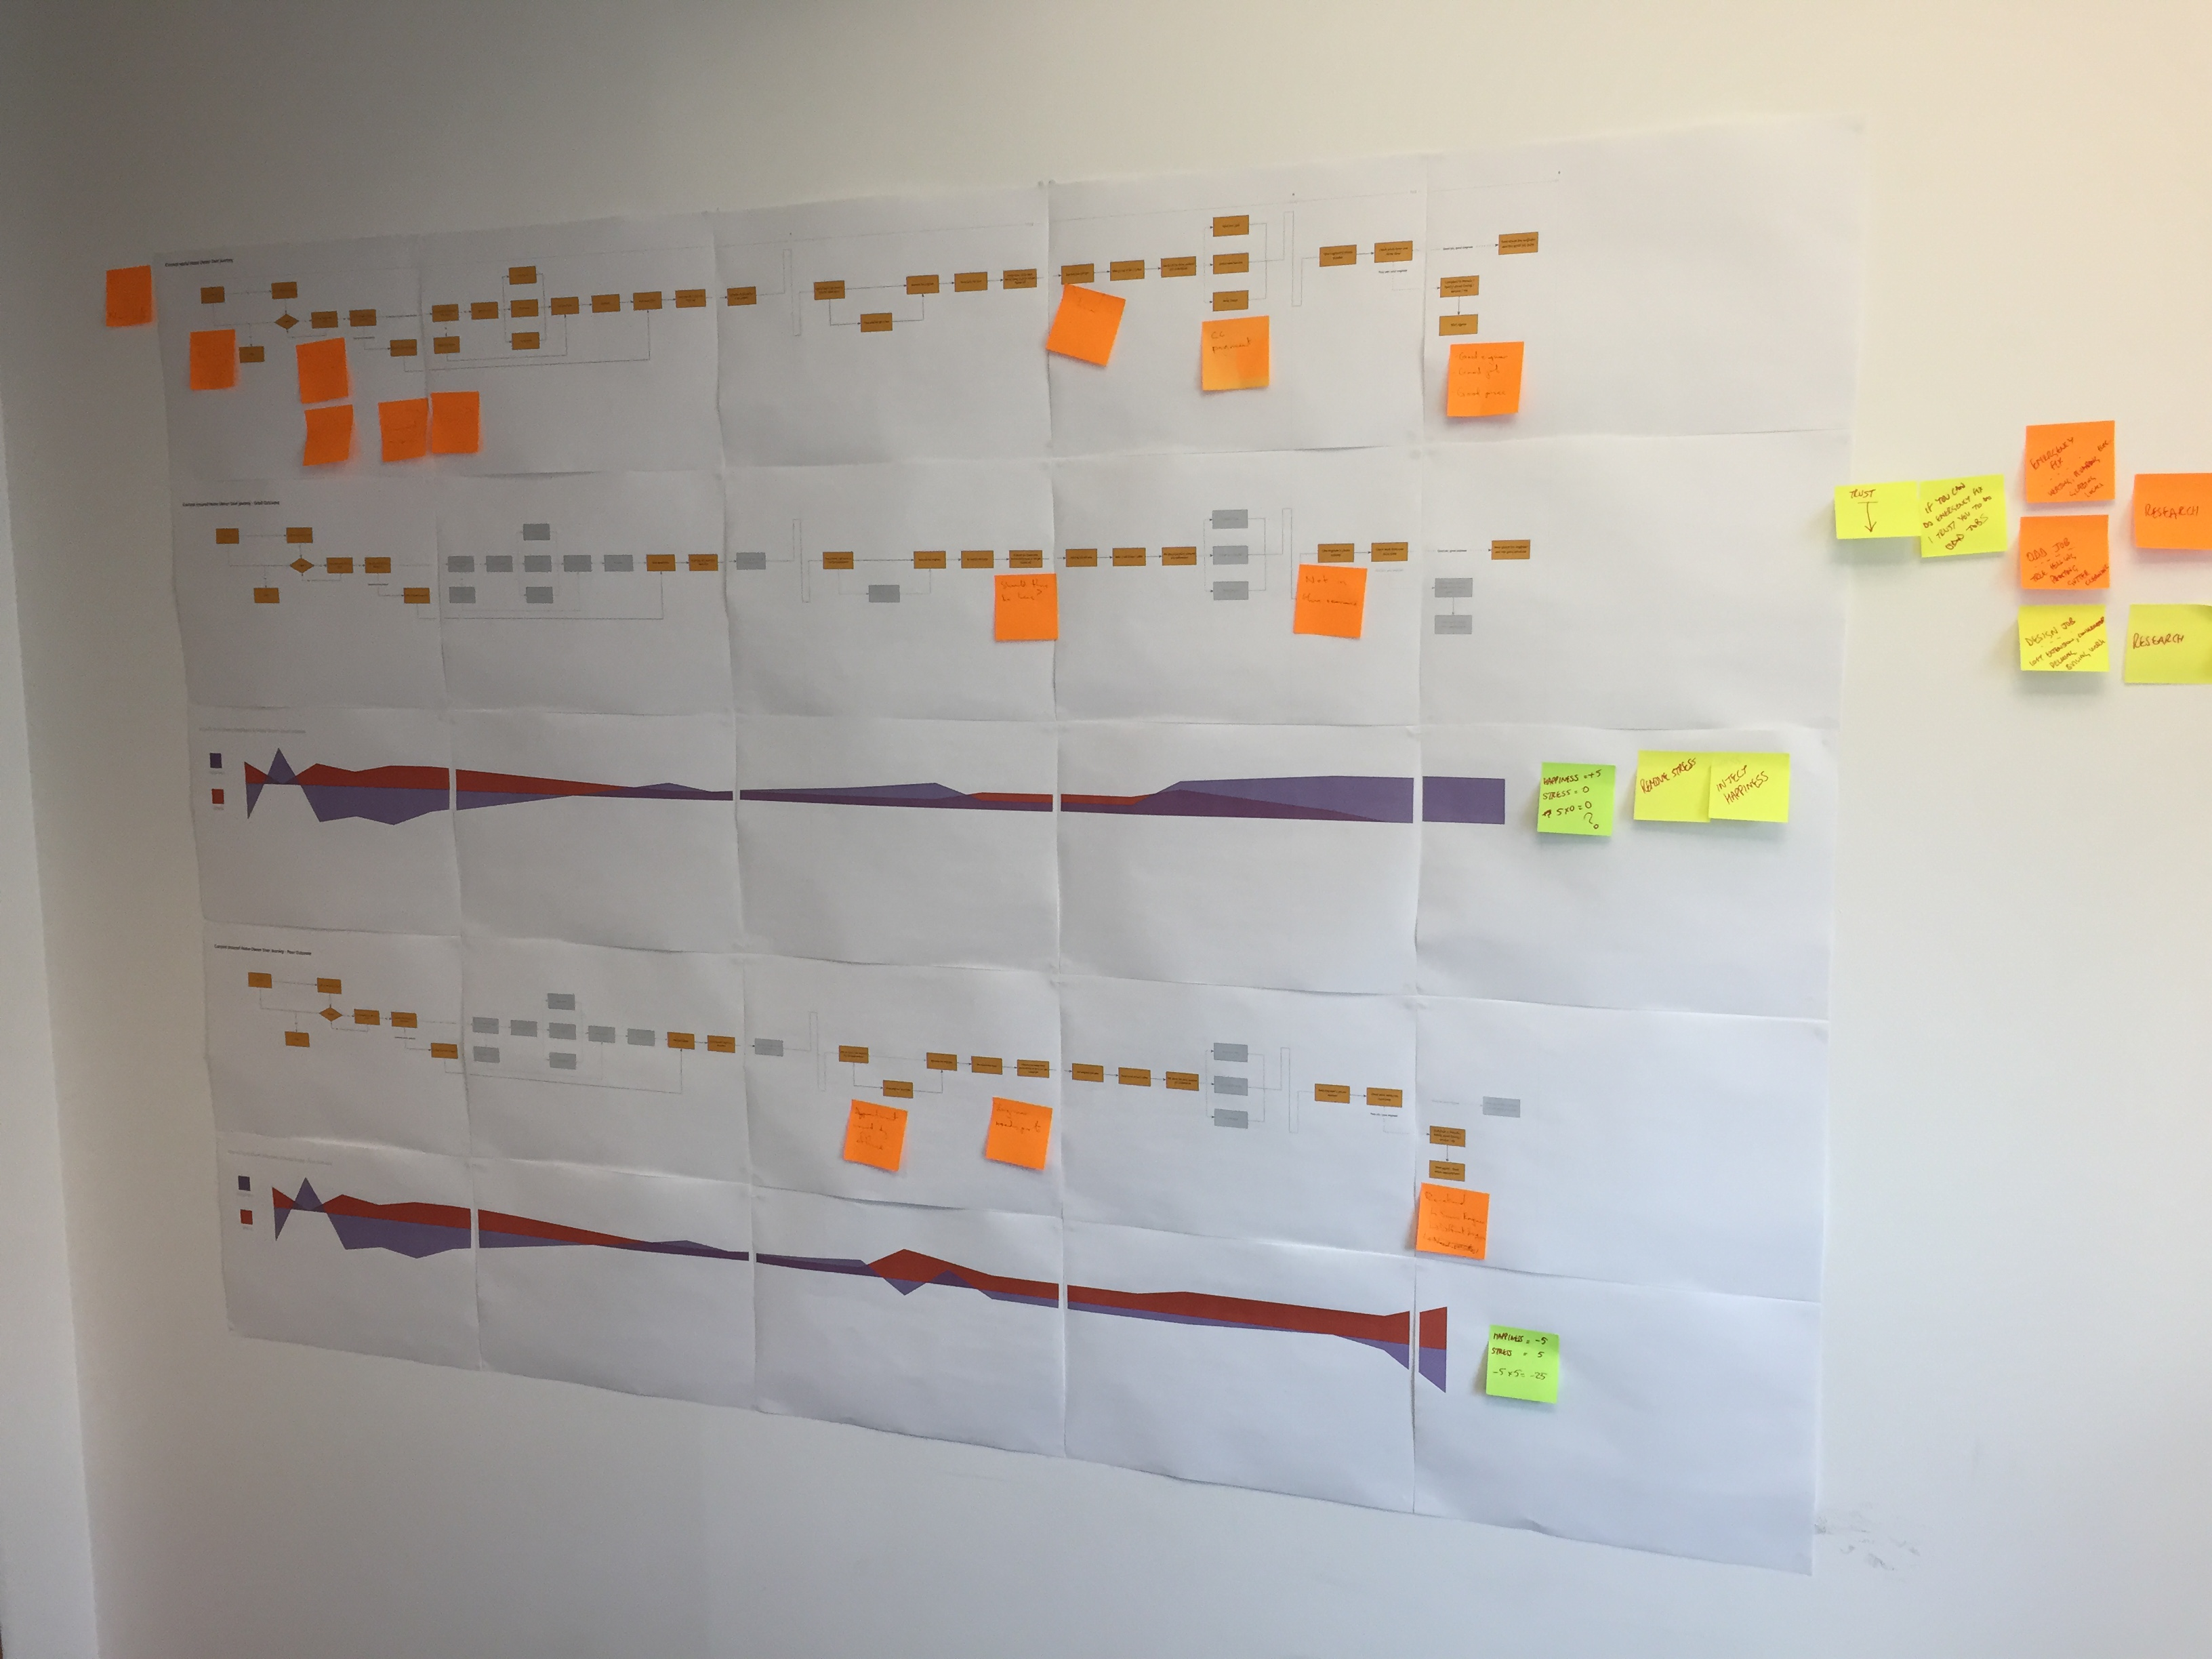 Photo of printed out Customer Journey map on an office wall